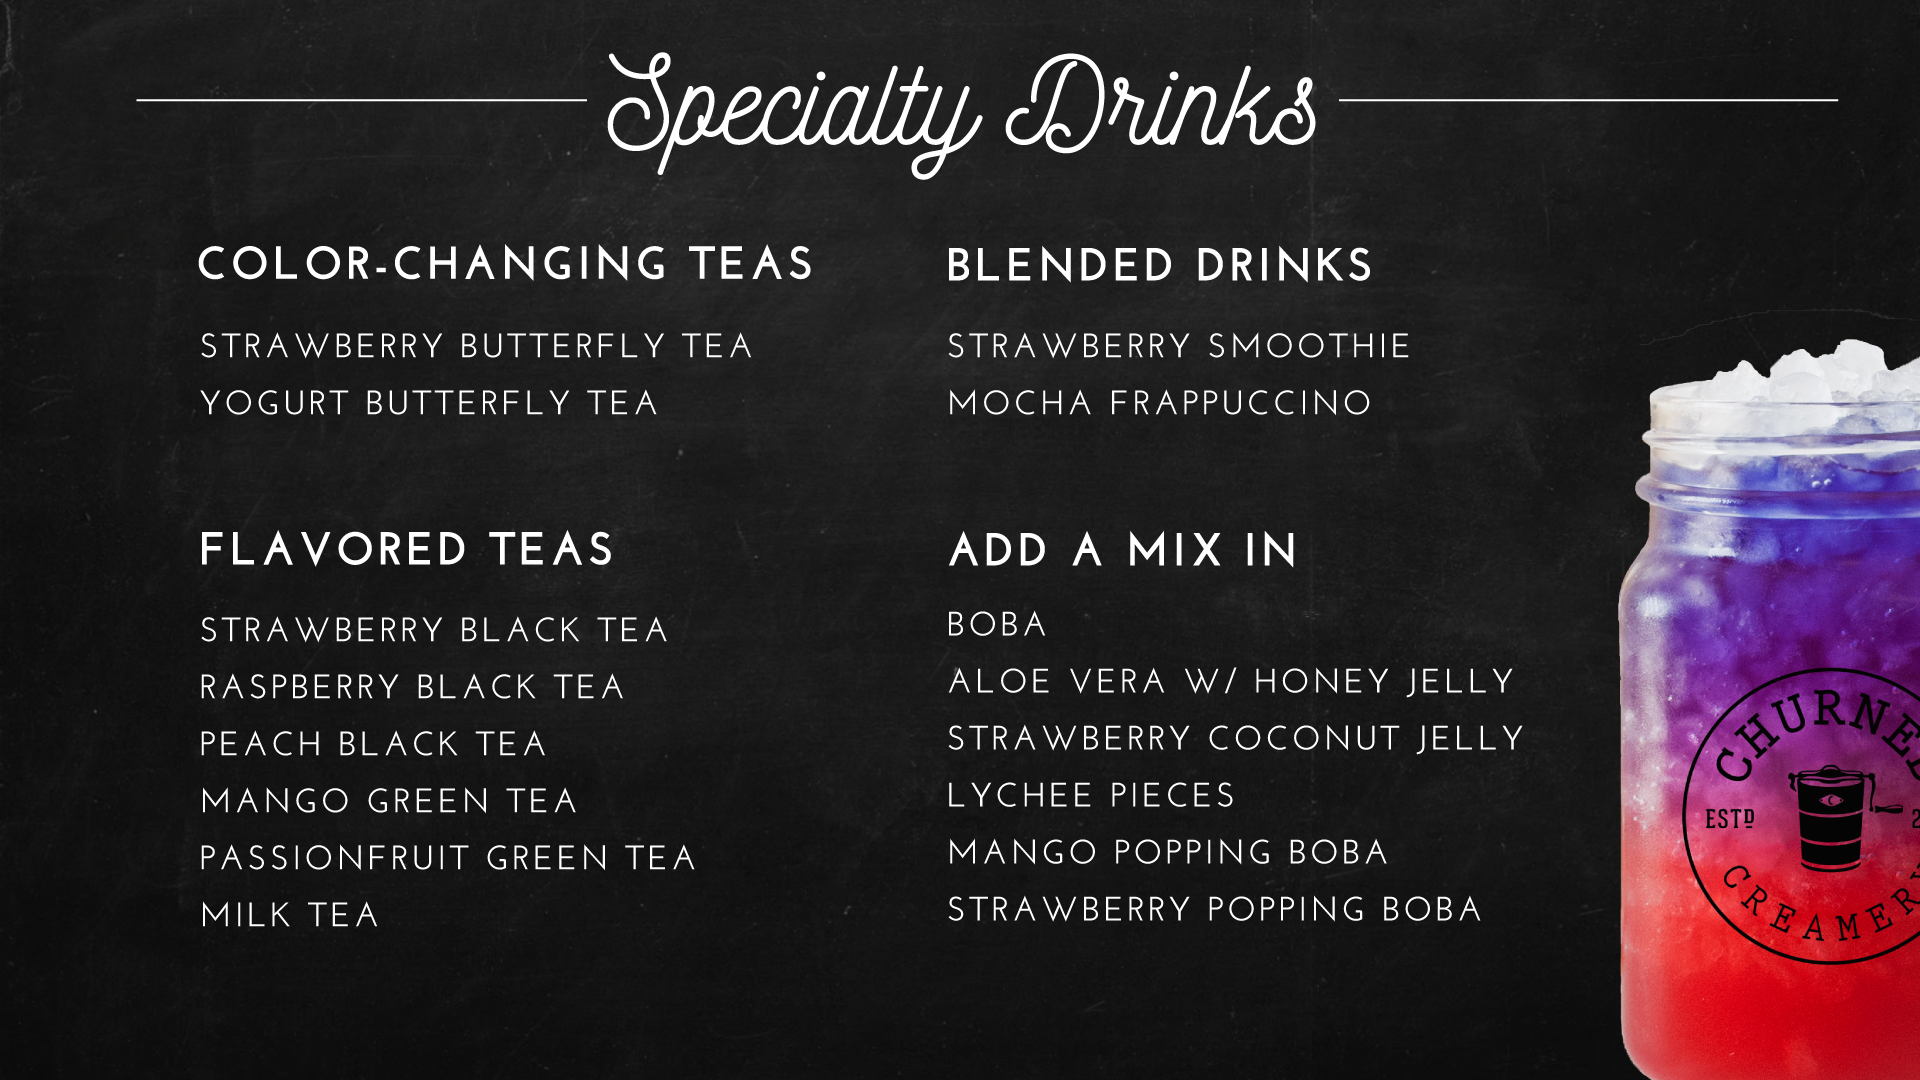 *TEA MENU ONLY AVAILABLE AT OUR MURRIETA & YORBA LINDA LOCATIONS!